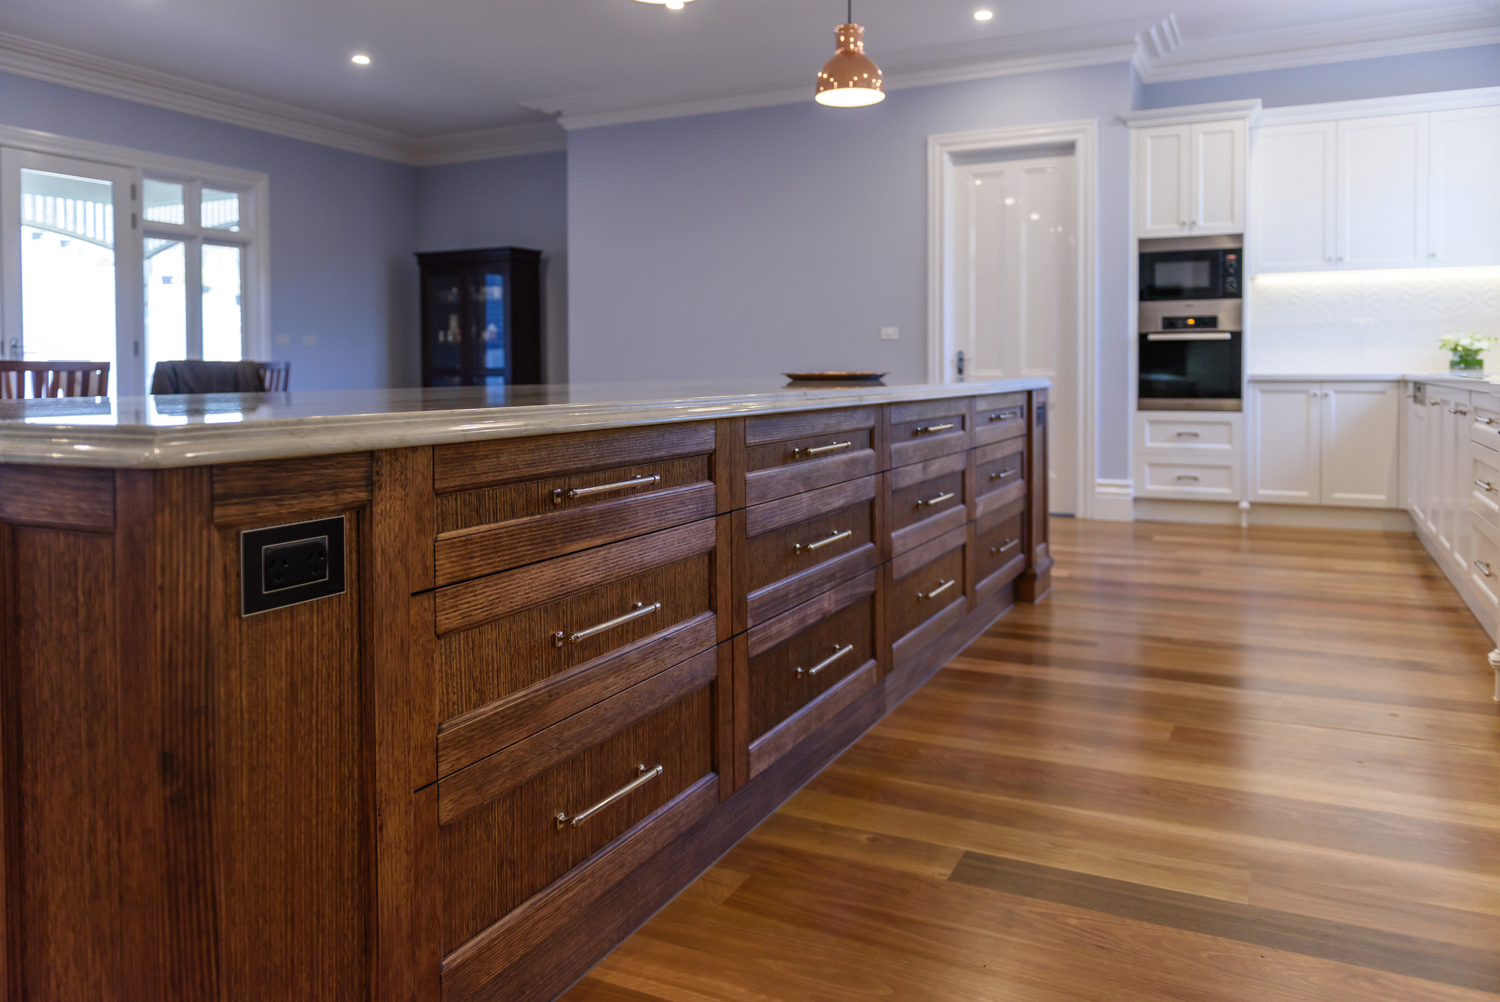 Period Style Palace Kitchen Design Completehome